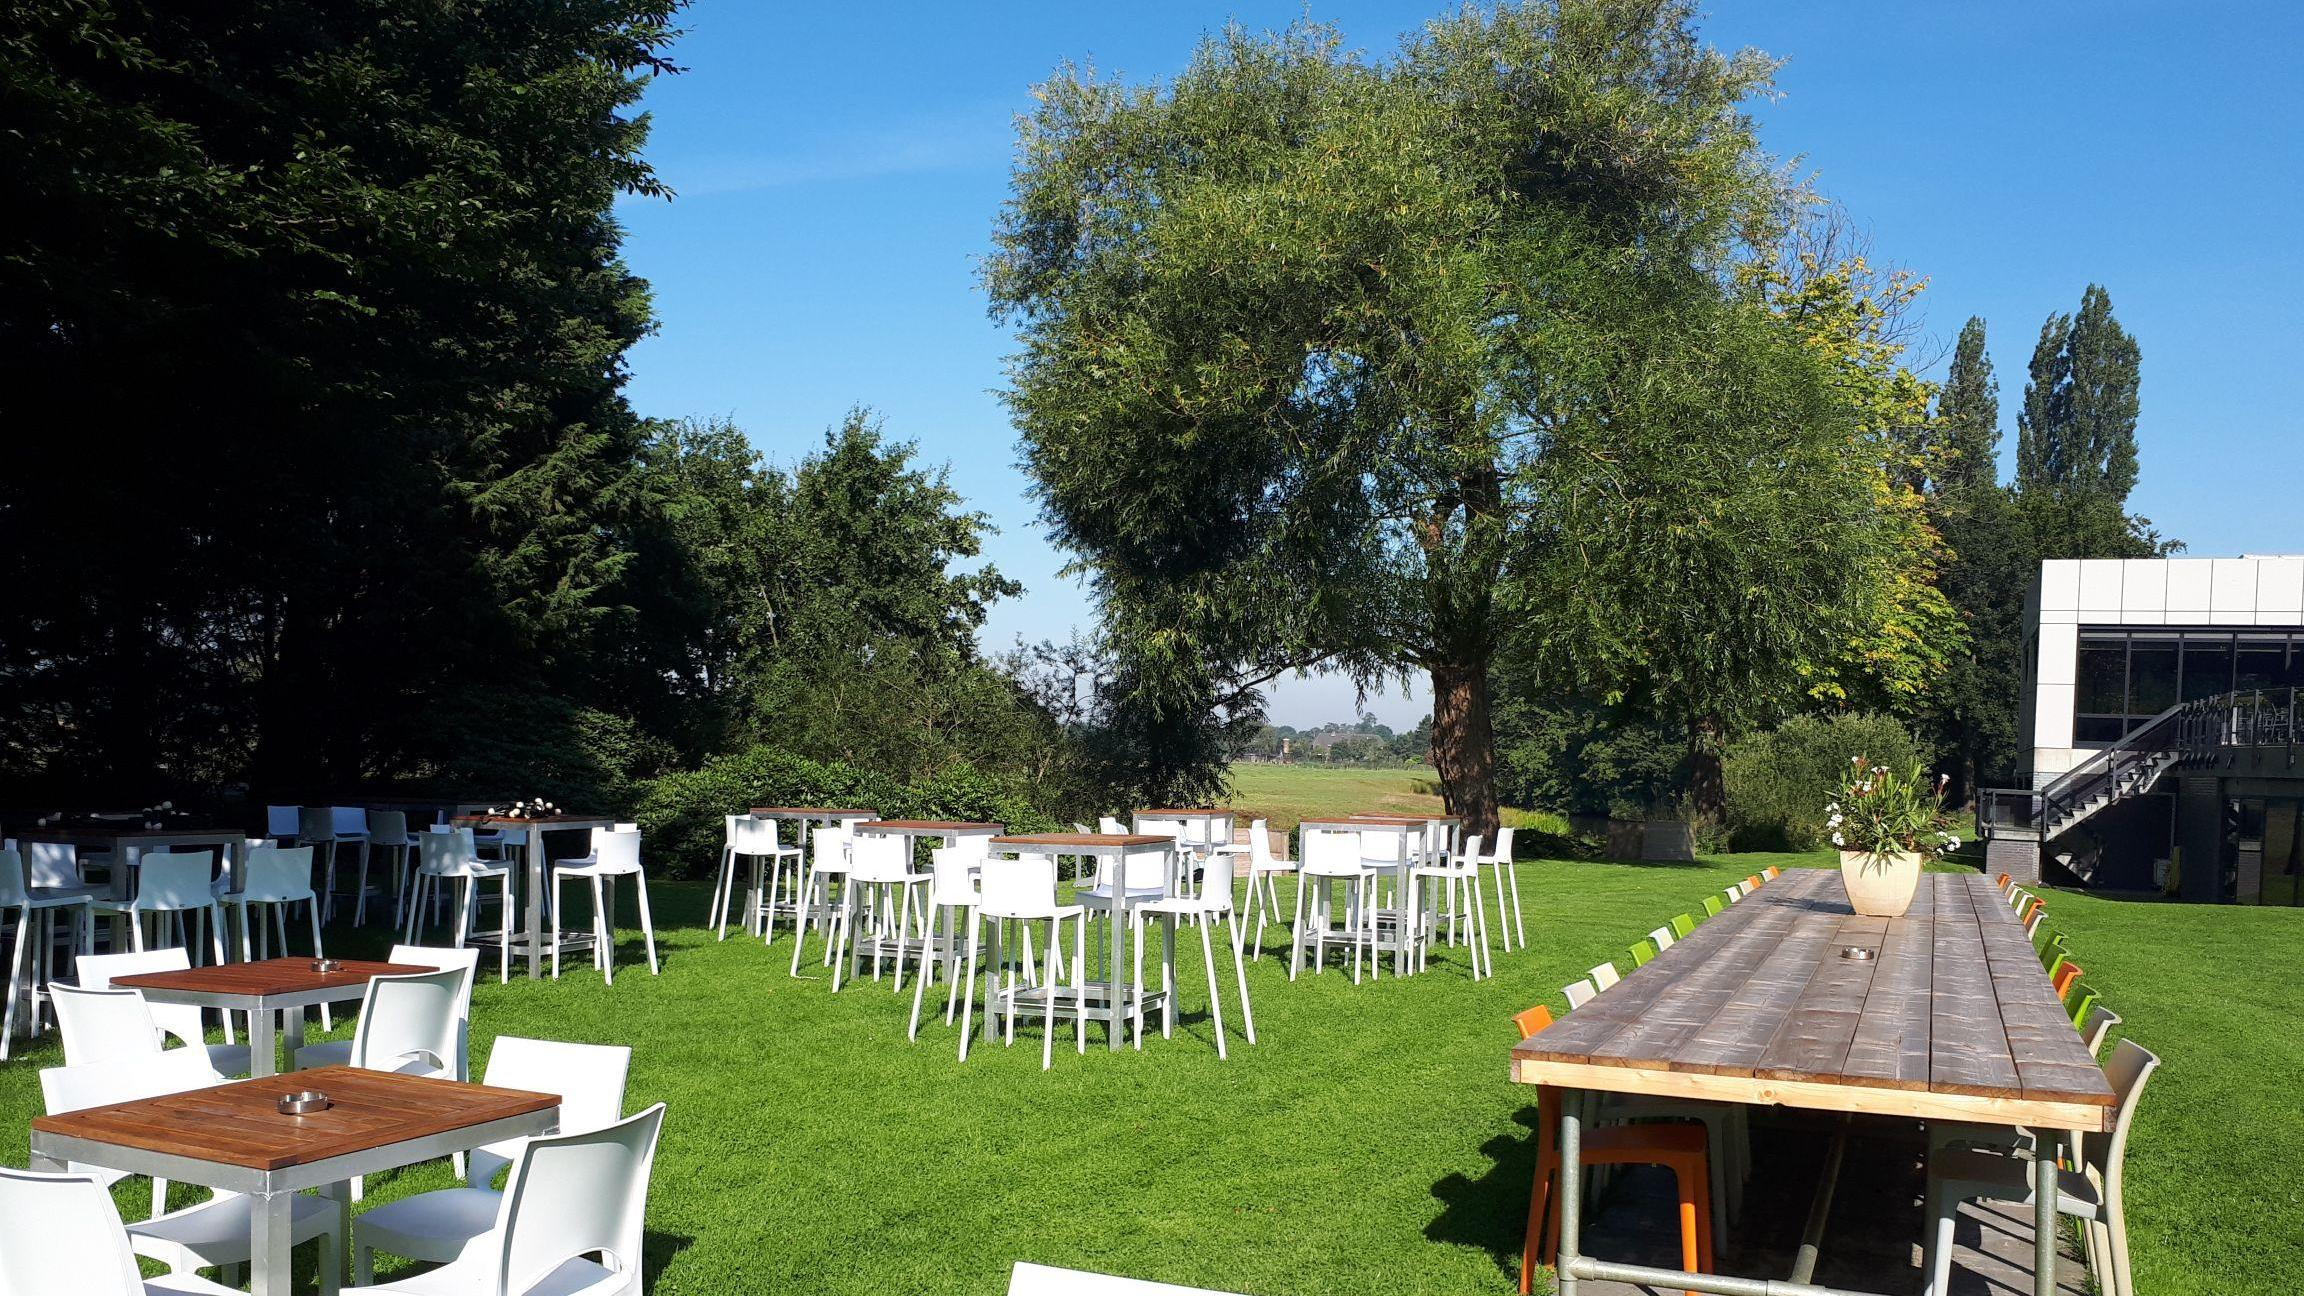 eventlocatie in tuin Ruwenberg den bosch